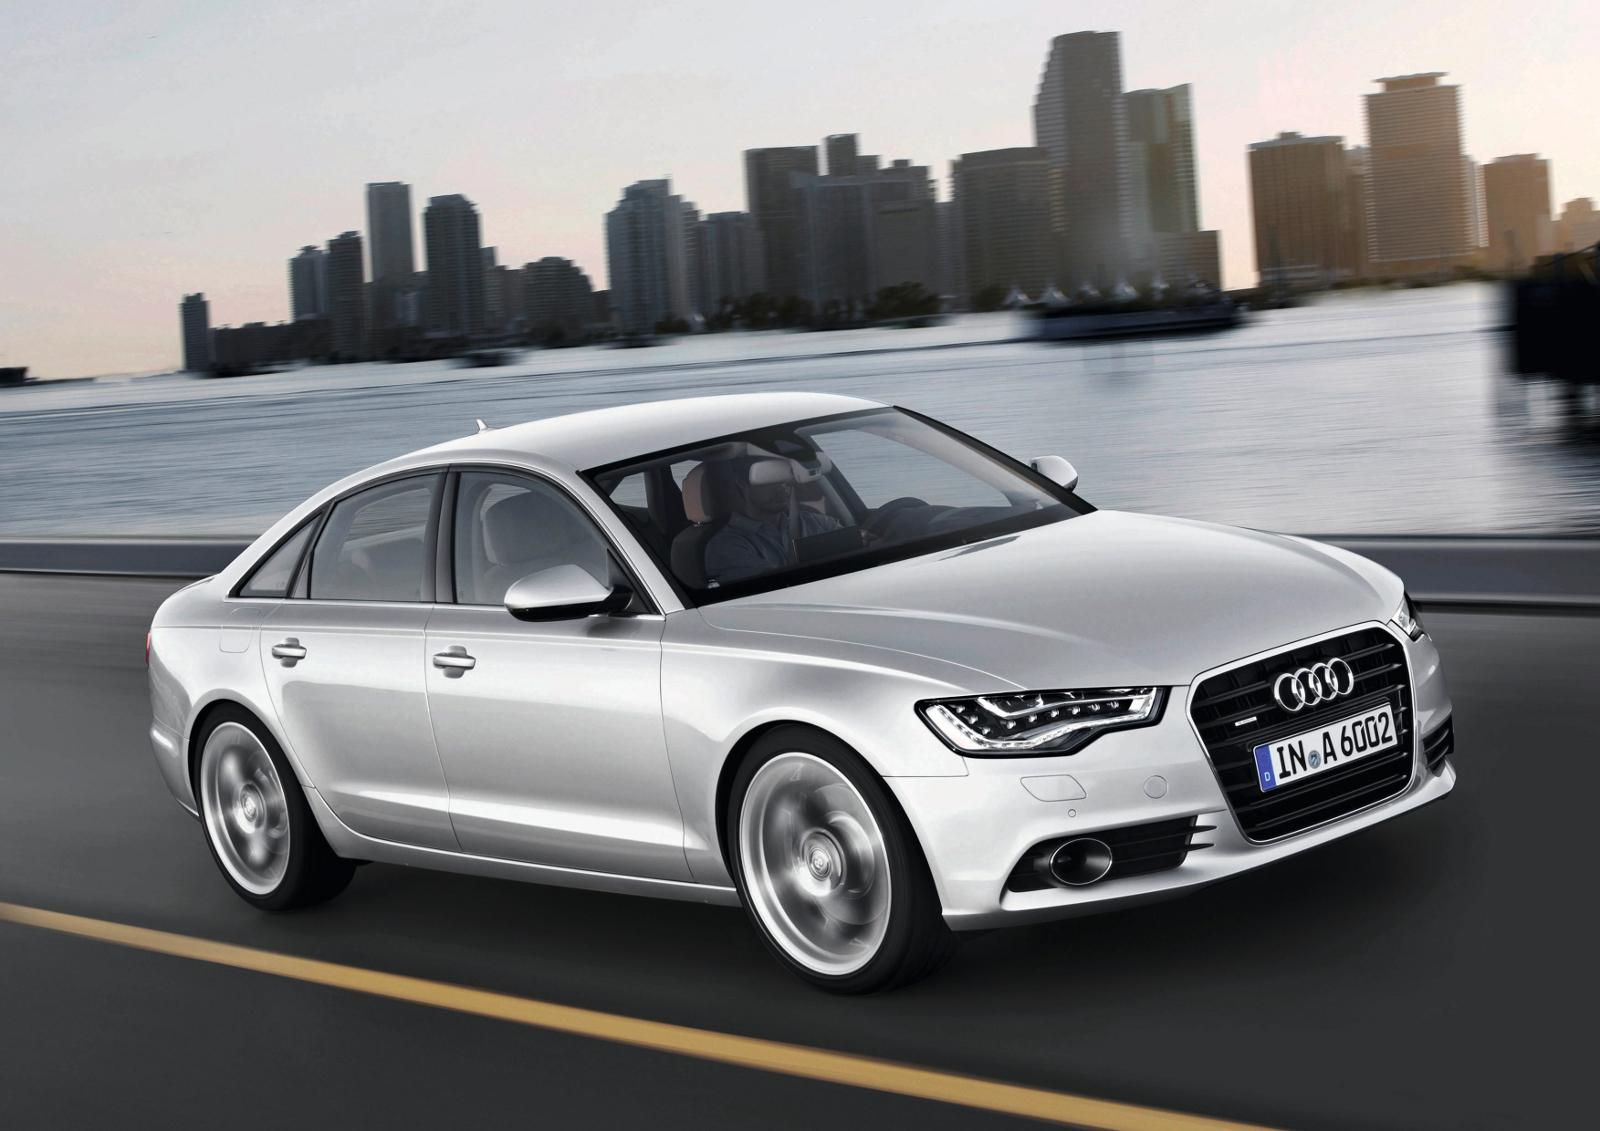 Audi A6 C7 wallpapers HQ 1600x1131